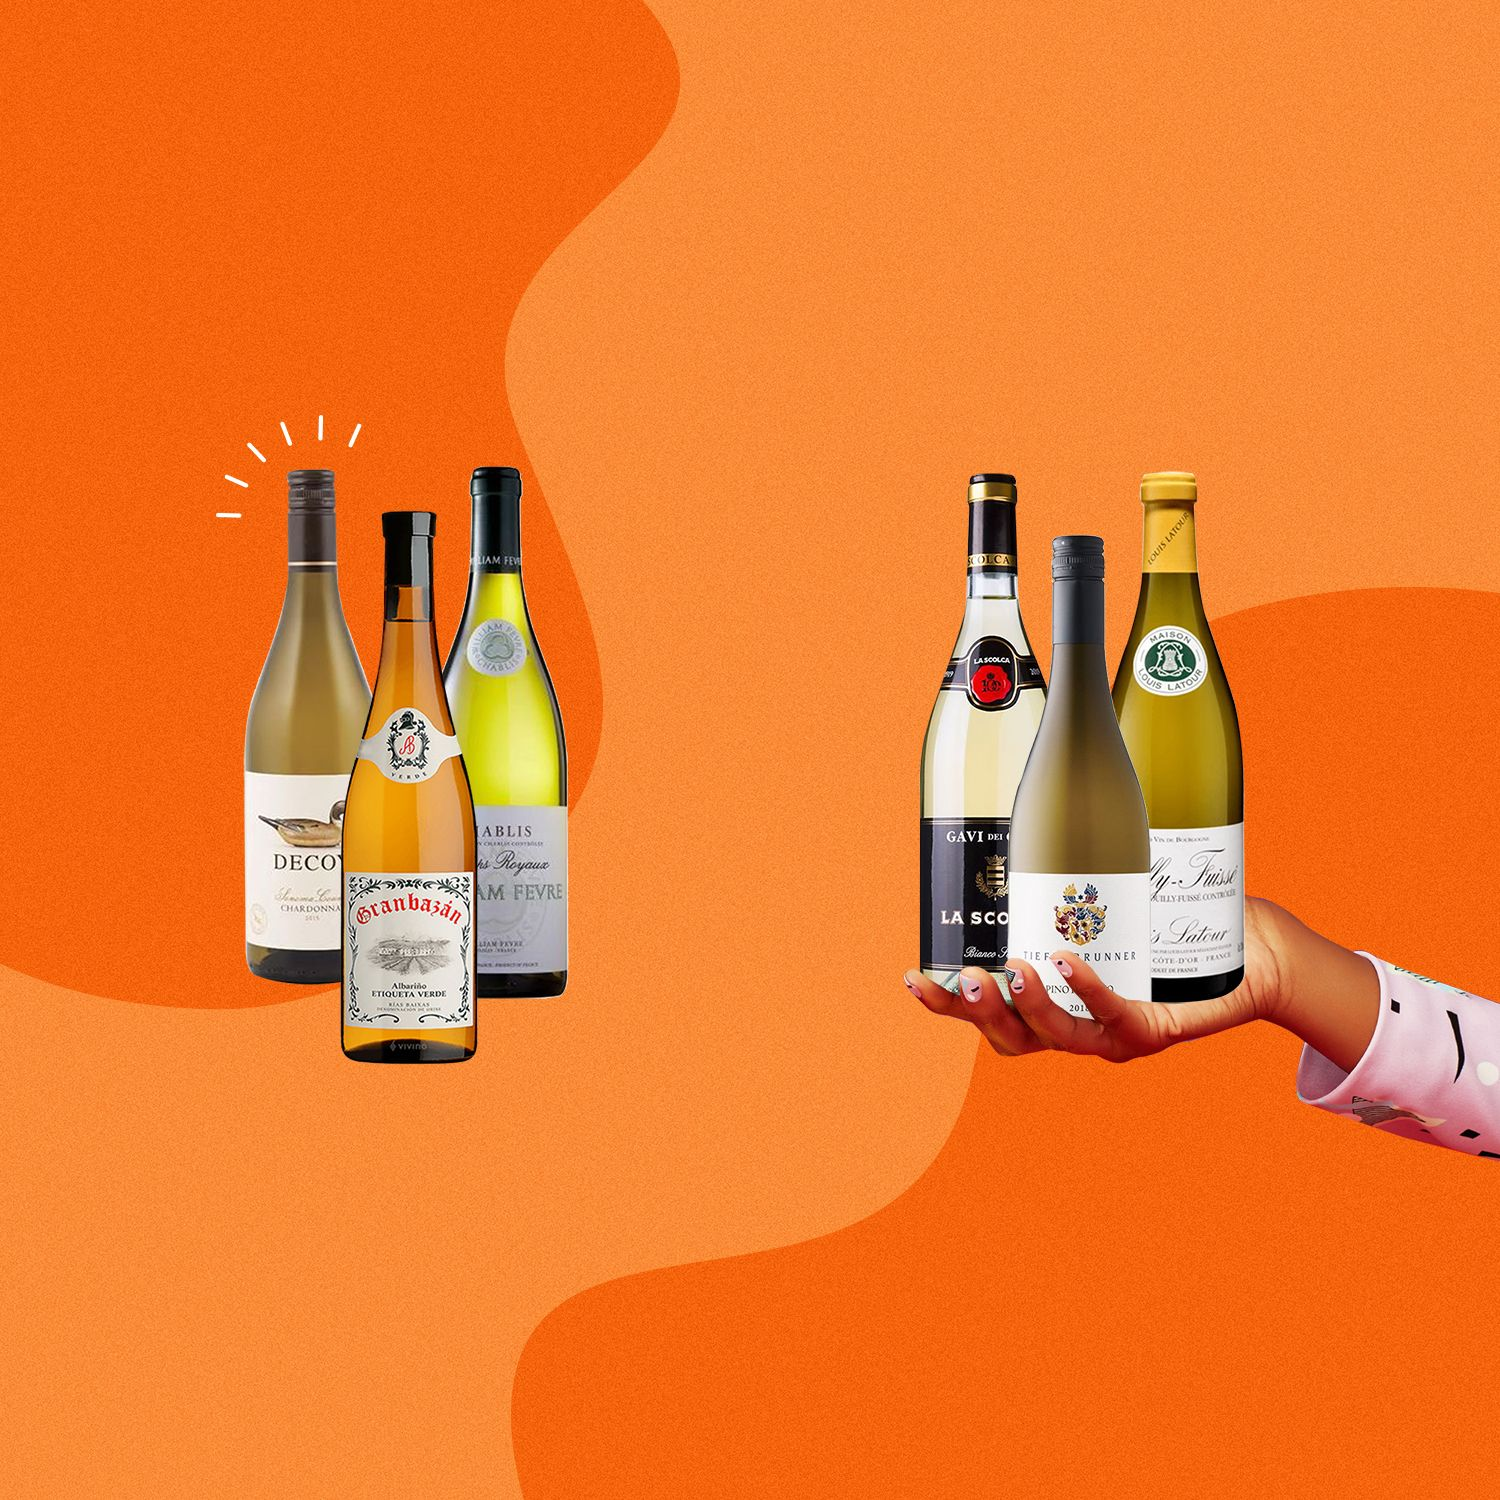 15 Best White Wines To Drink In 2020 Good White Wines Under 45